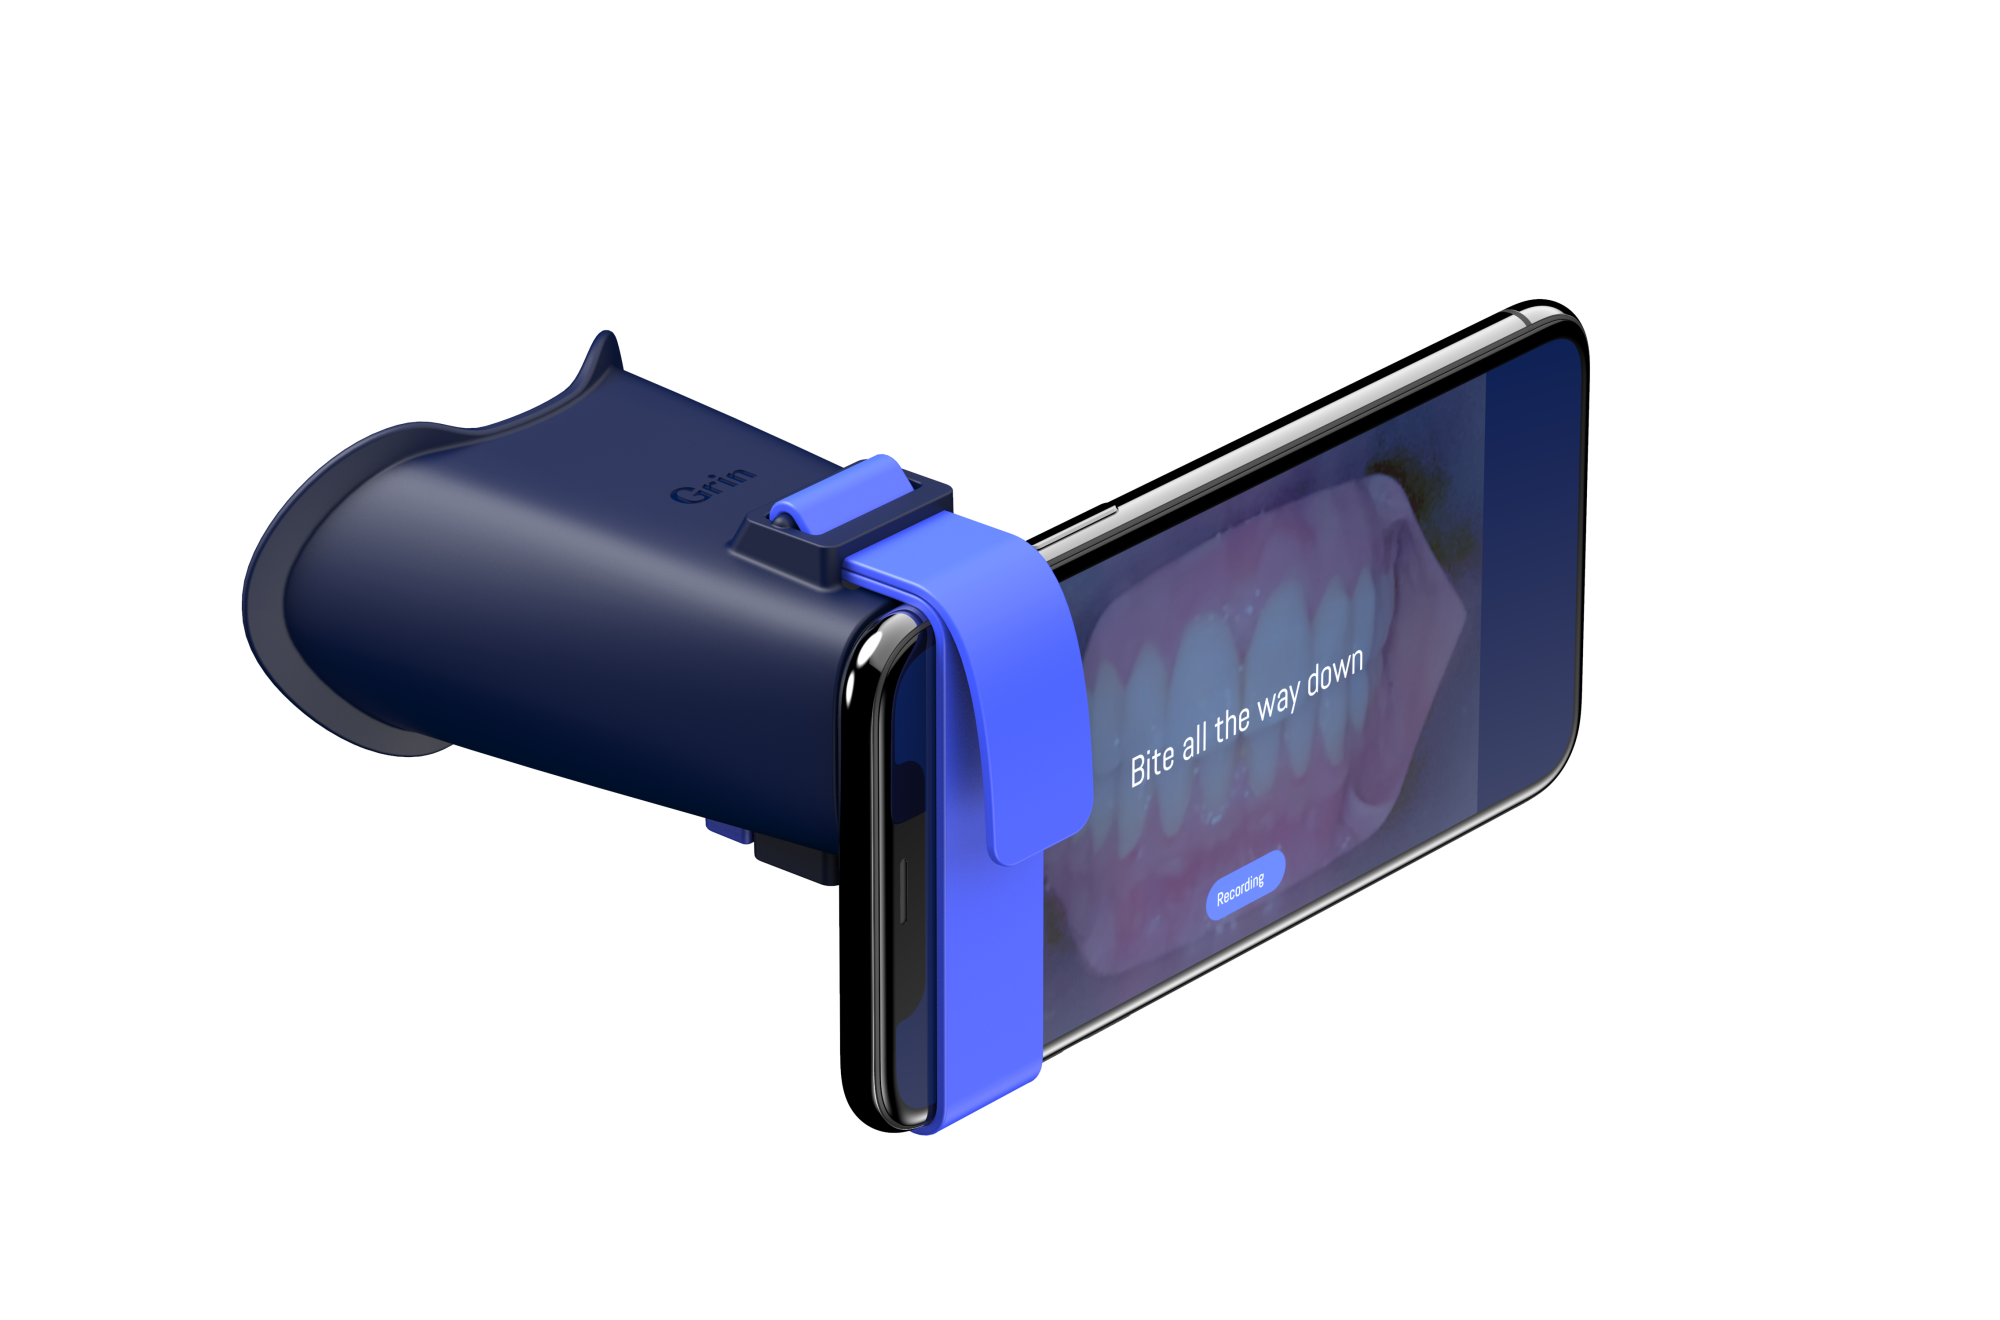 Grin's scope device